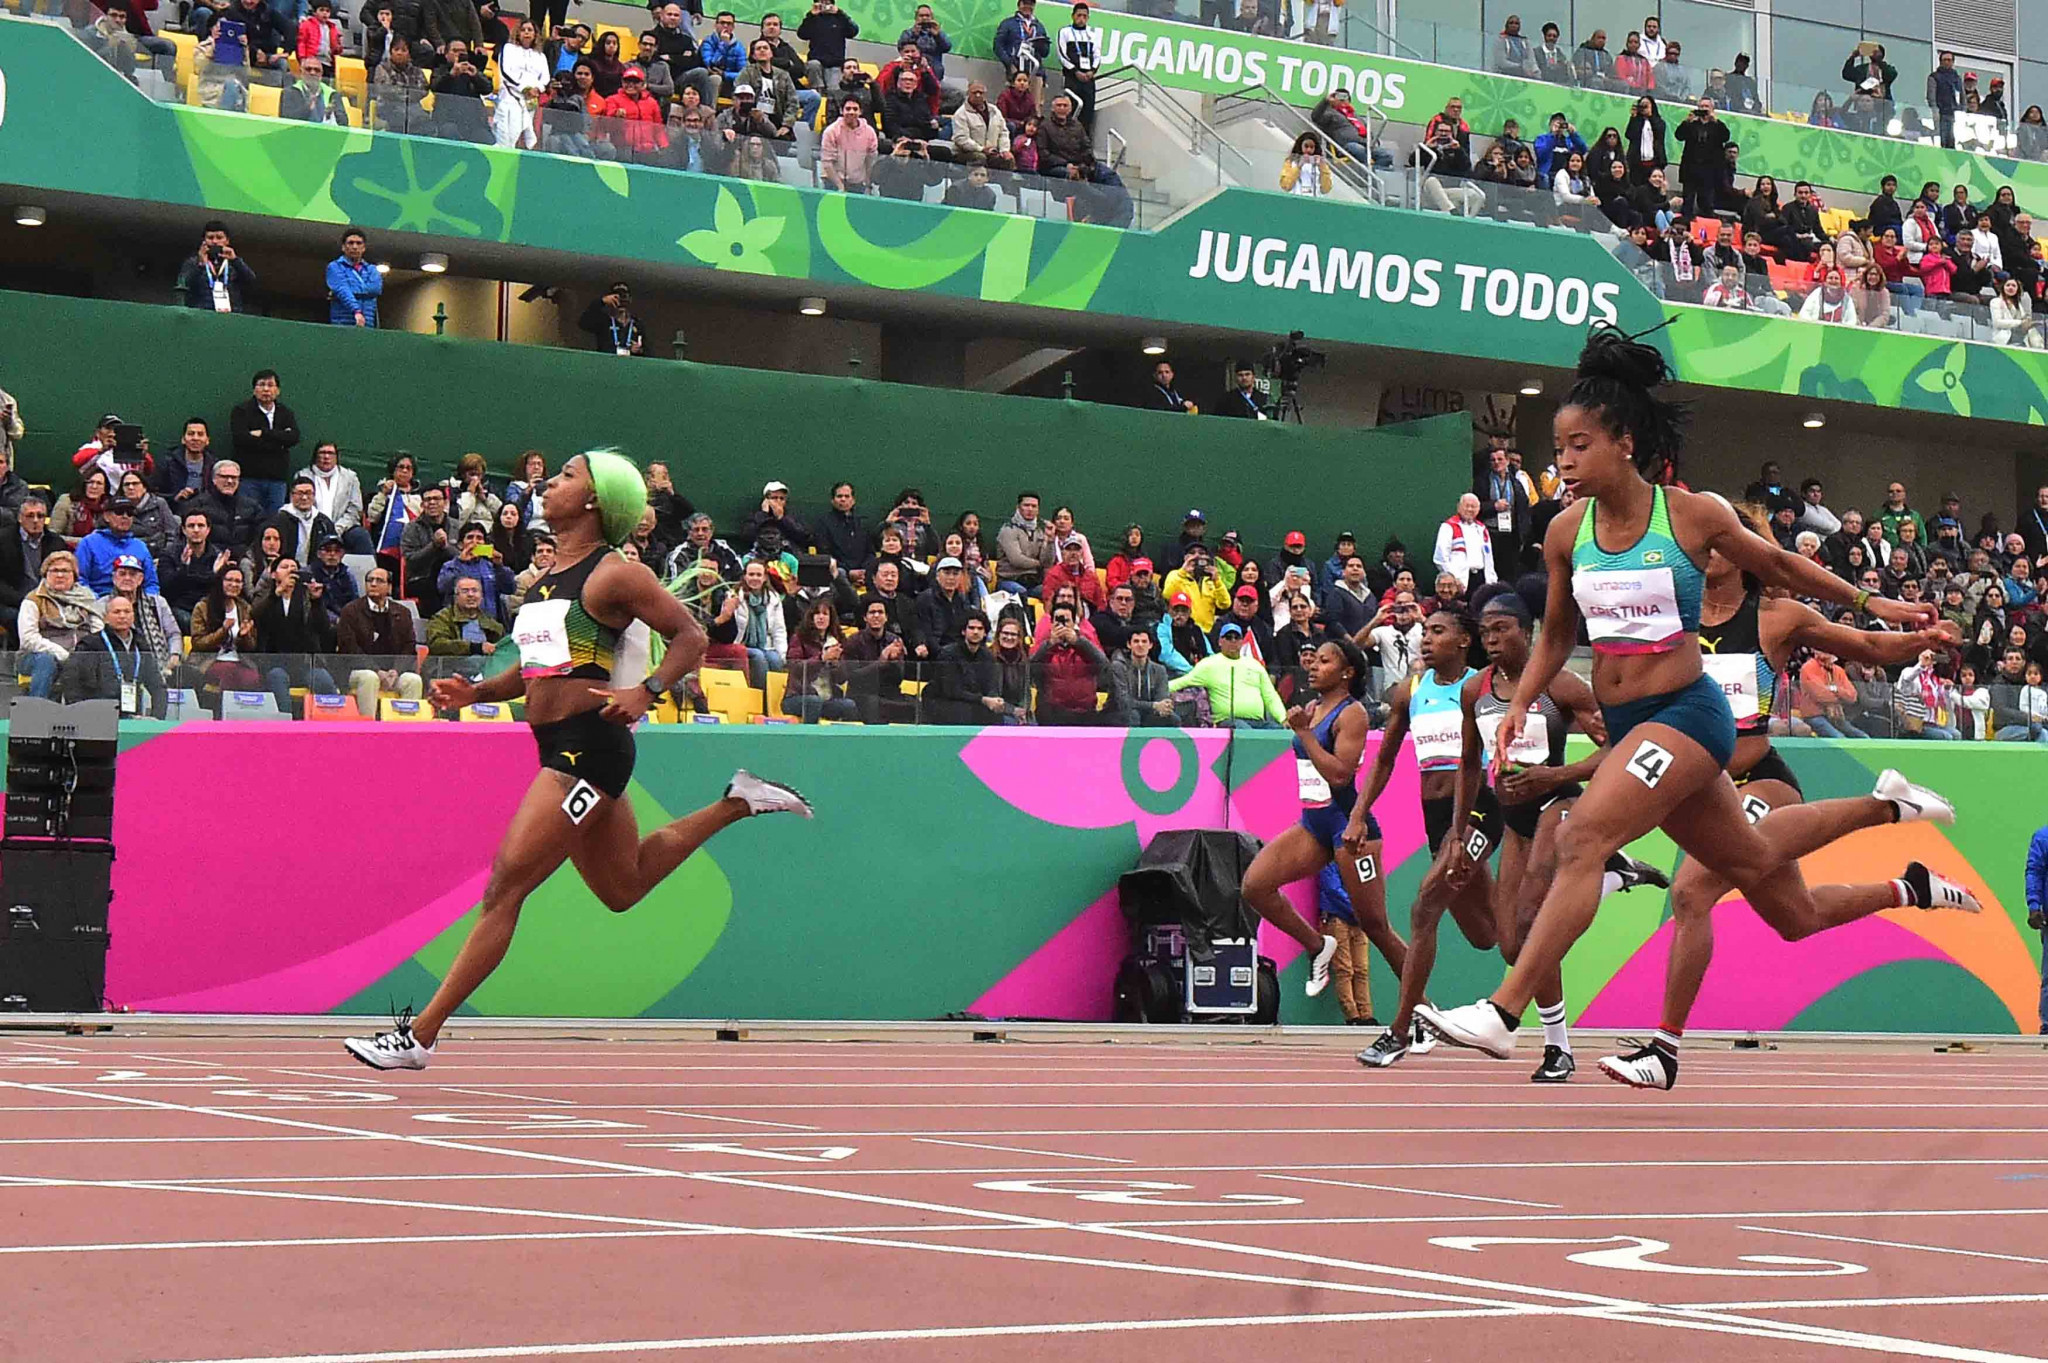 Fraser-Pryce breaks 40-year-old Pan American Games record to win women's 200m